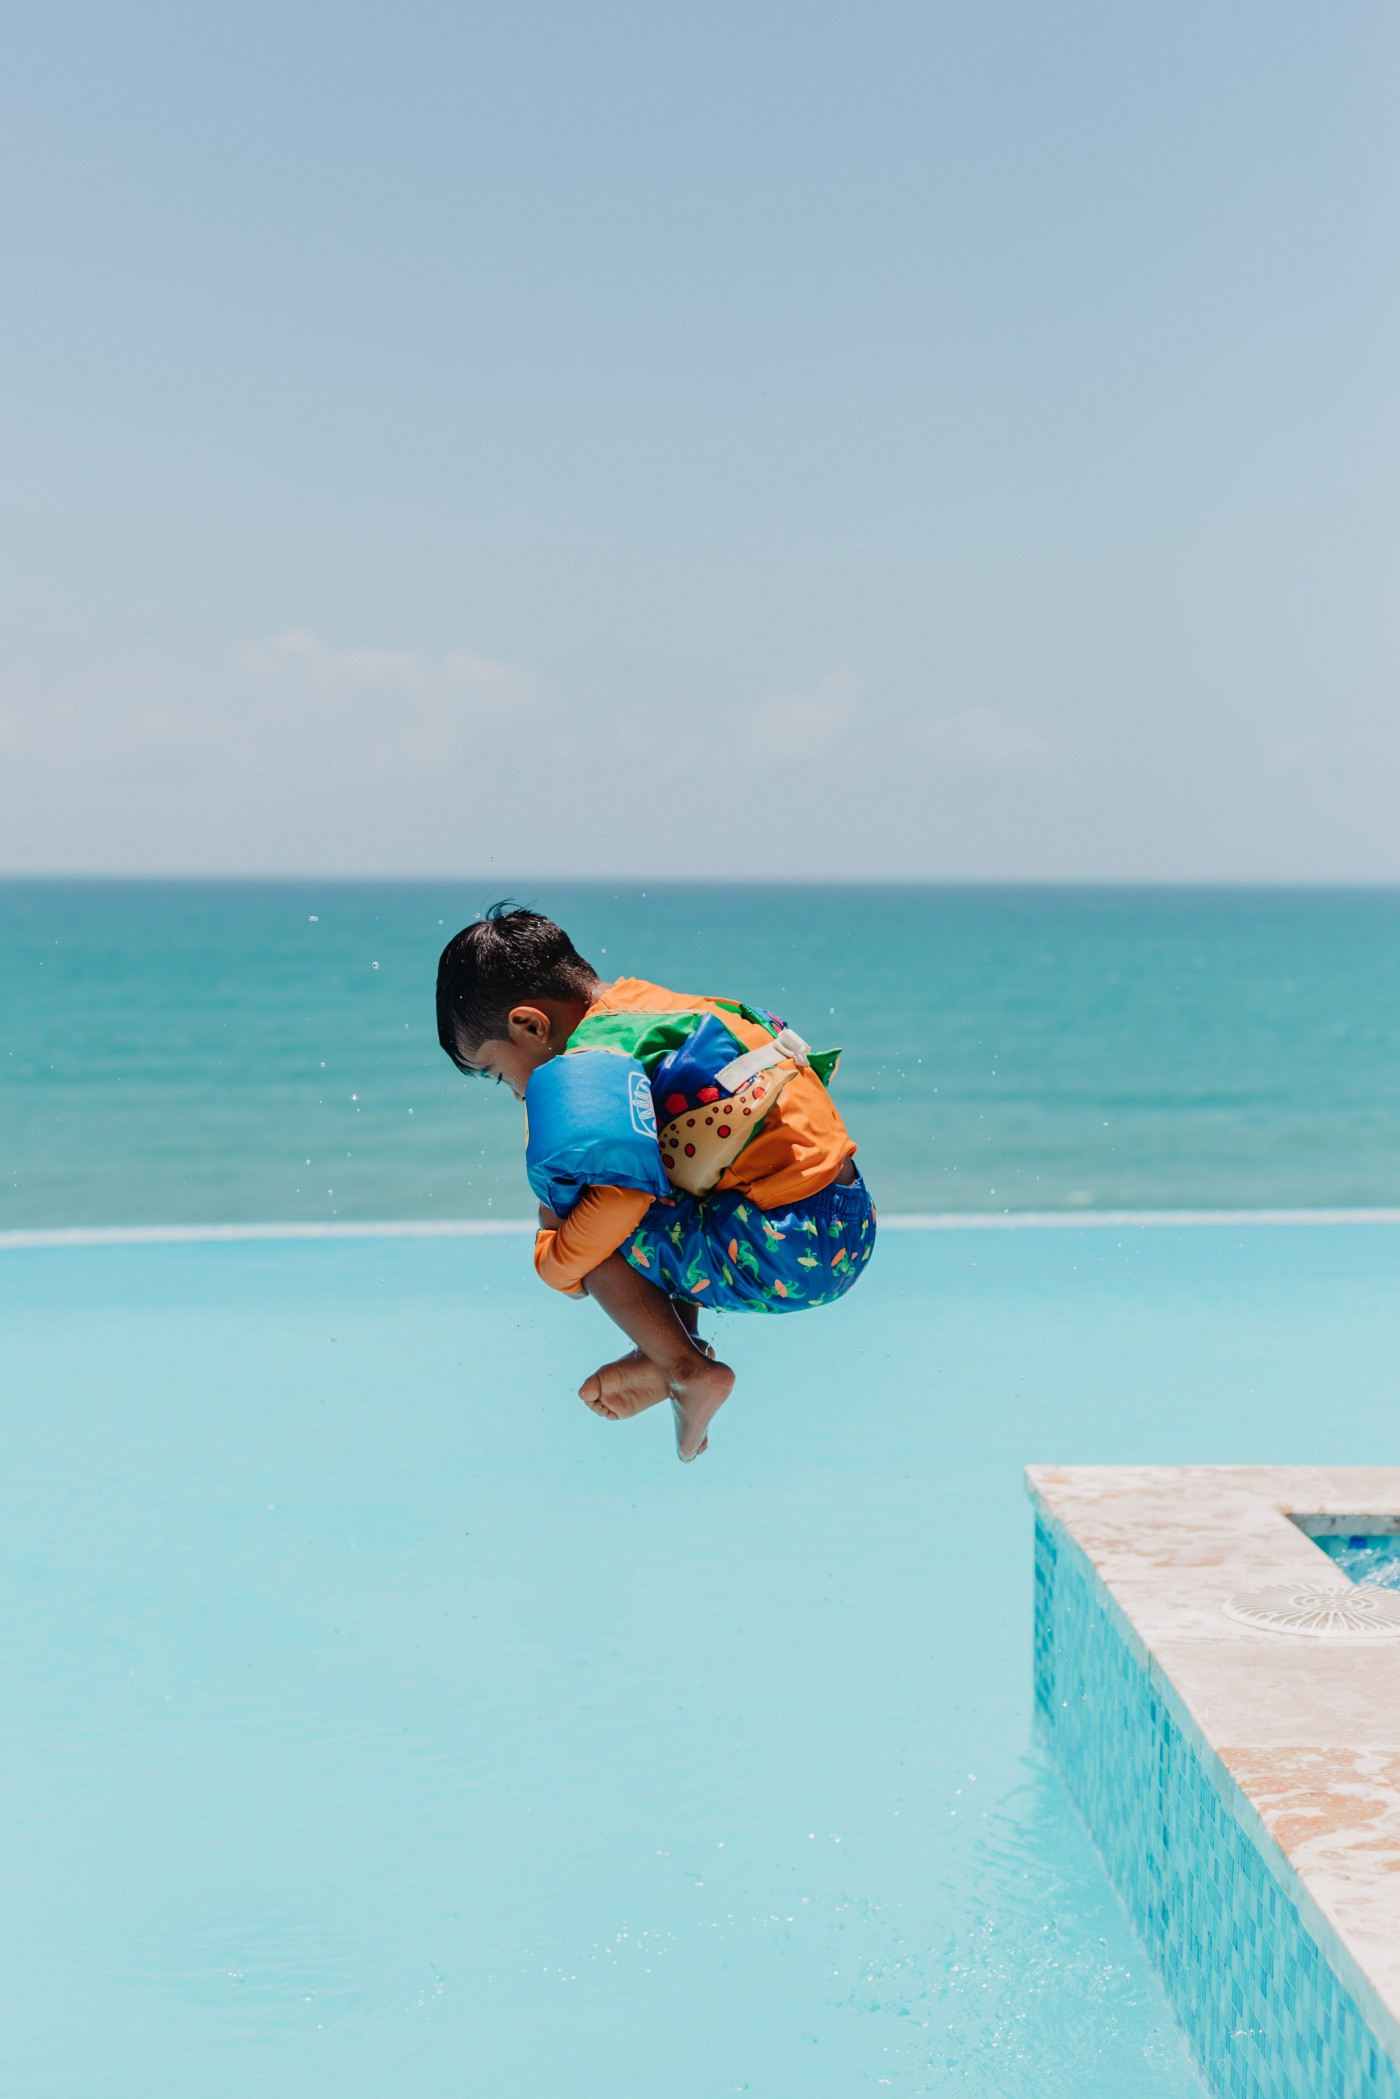 Hi there! BichoDoMato here! This picture displays a kid jumping in a pool, all wrapped on himself (herself?). The green blue of the sea background is stunning and matches well with the blue color of the infinite pool. What a picture! Cheers!